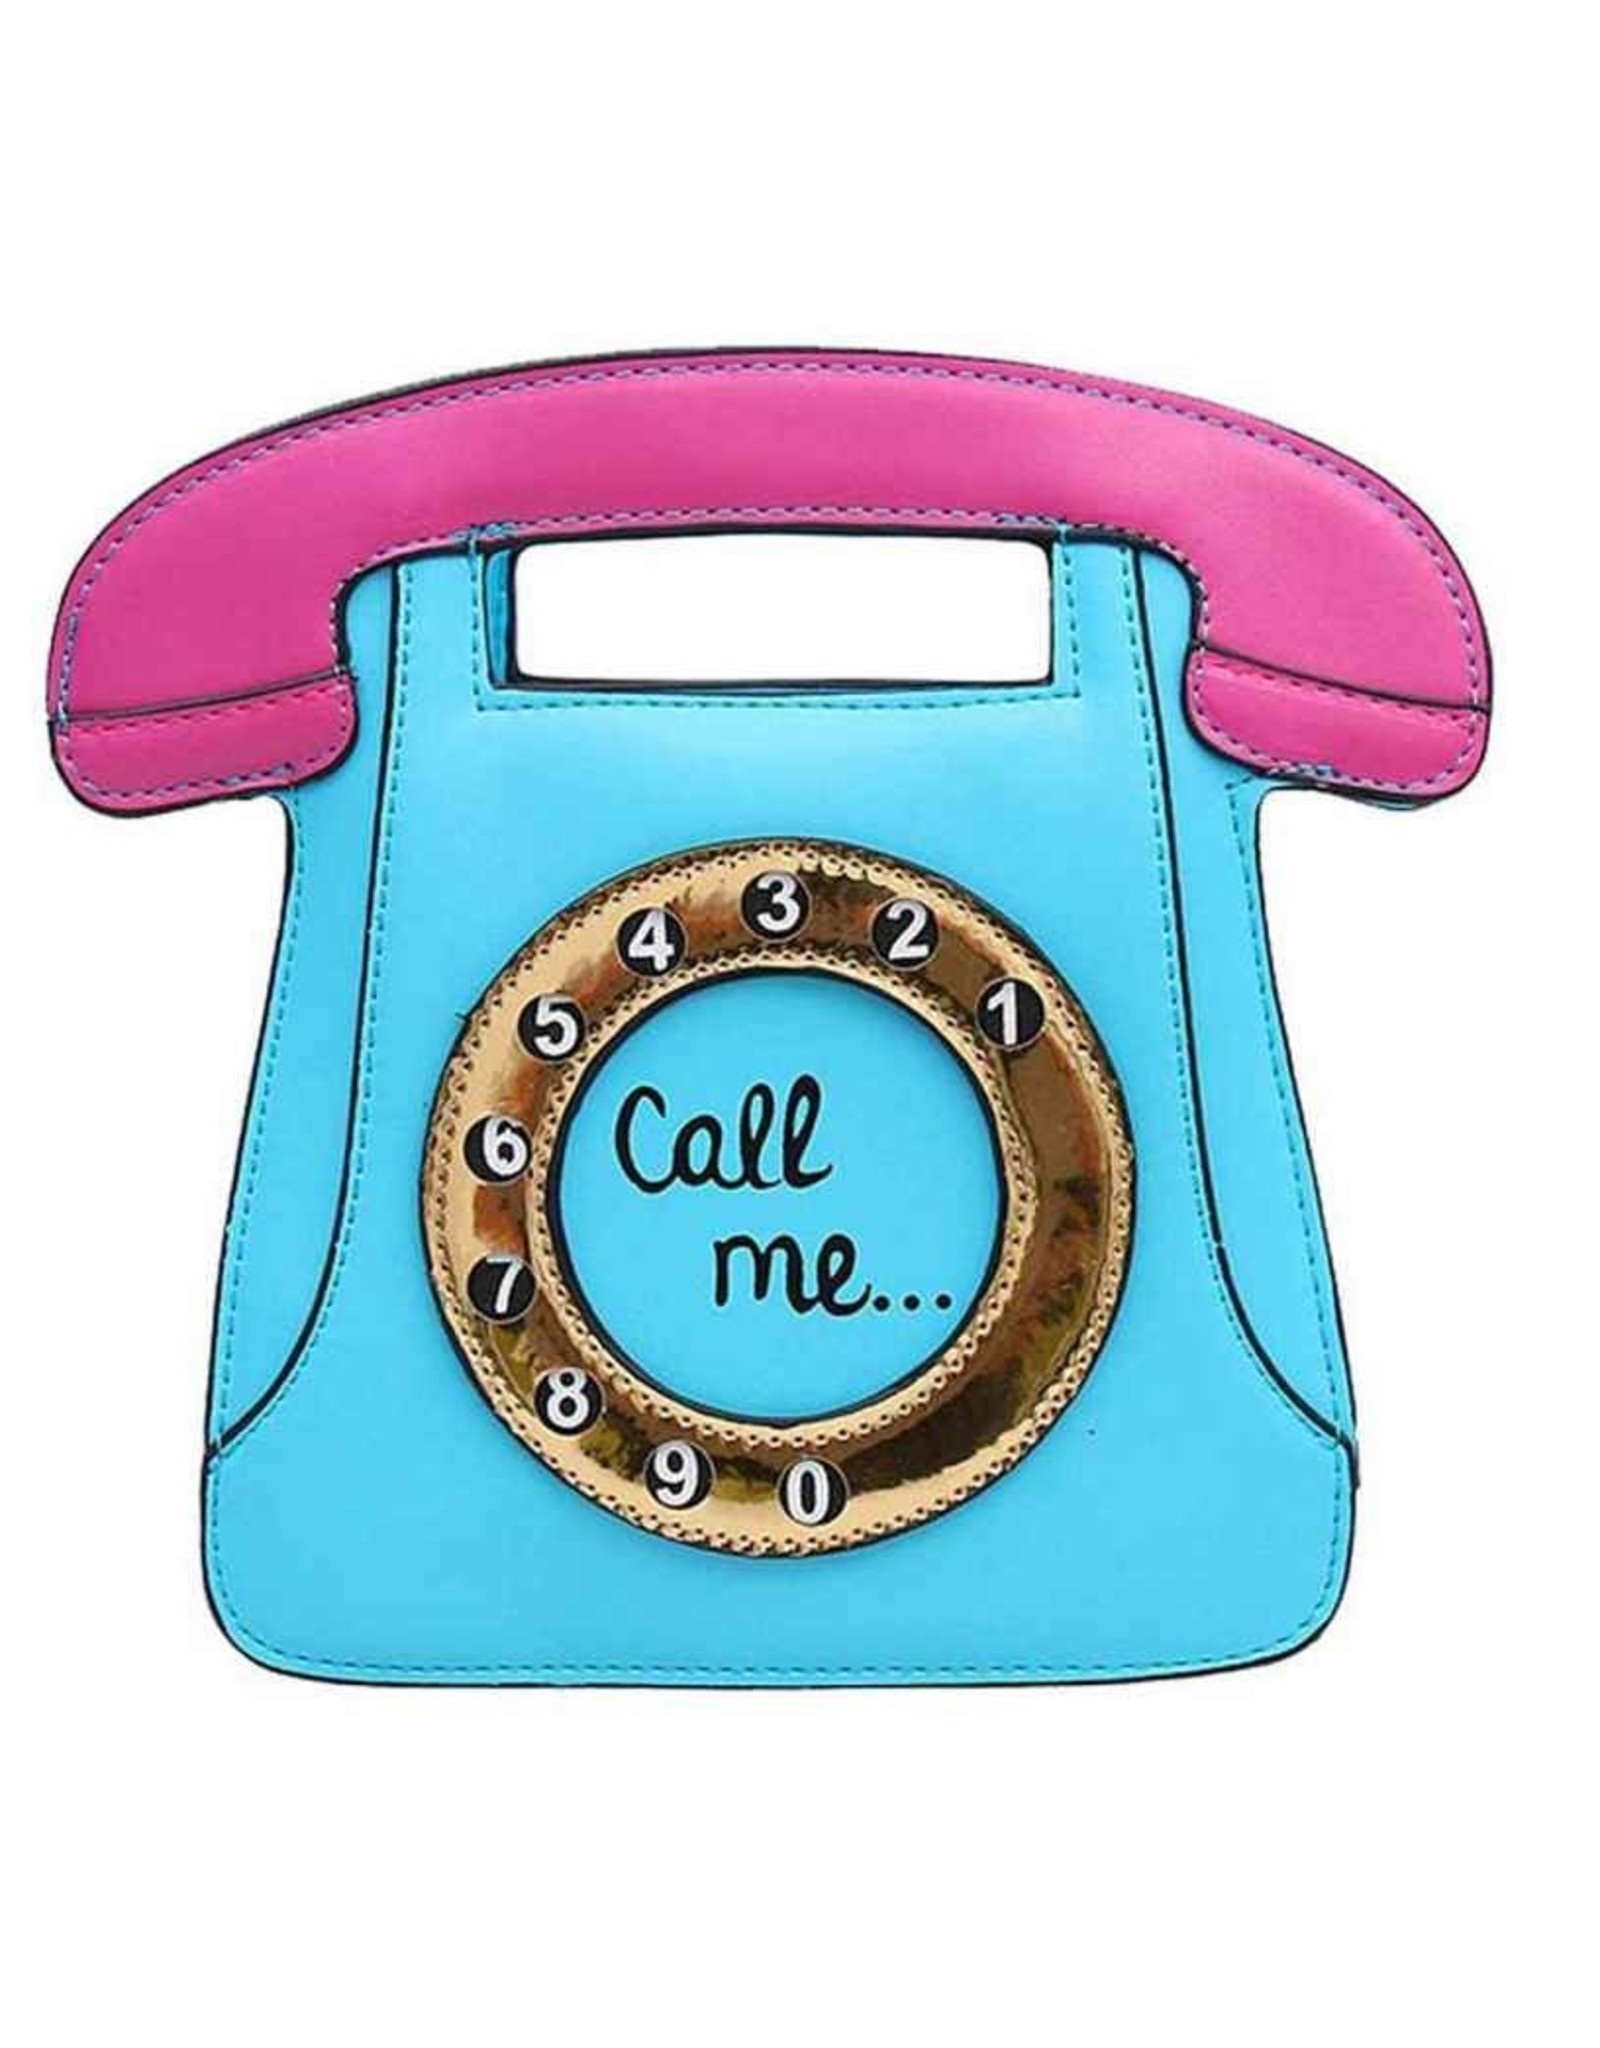 "Magic Bags Fantasy bags and wallets - Fantasy hand bag Retro Telephone ""Call Me"" (baby blue)"